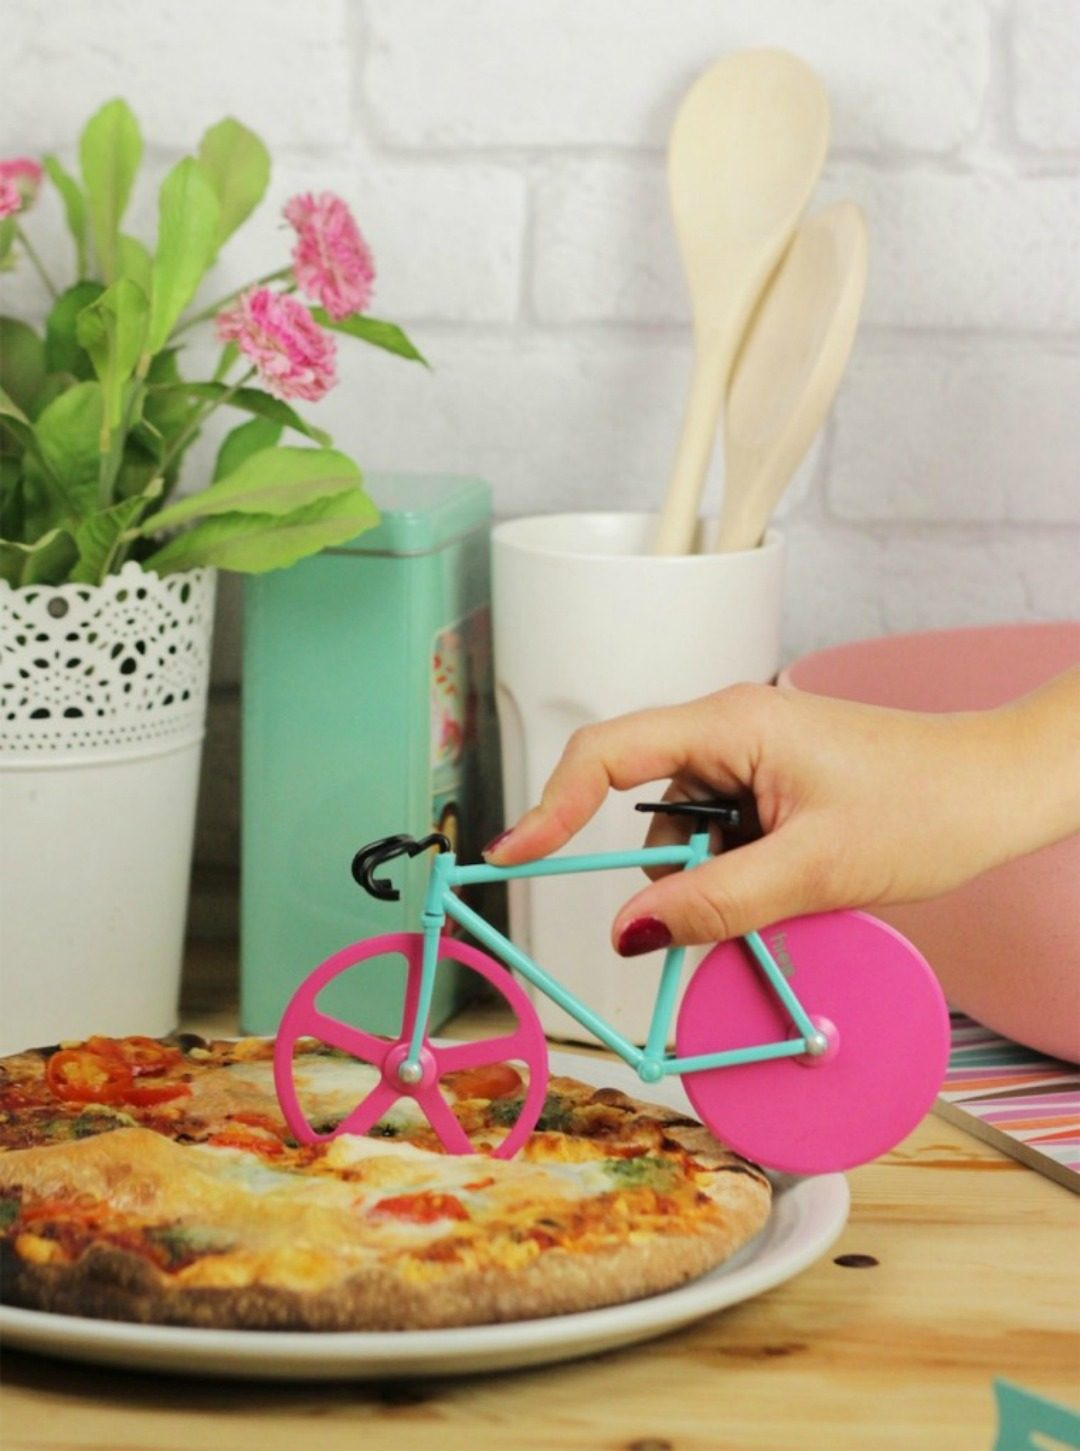 fixie pizza cutter by doiy design